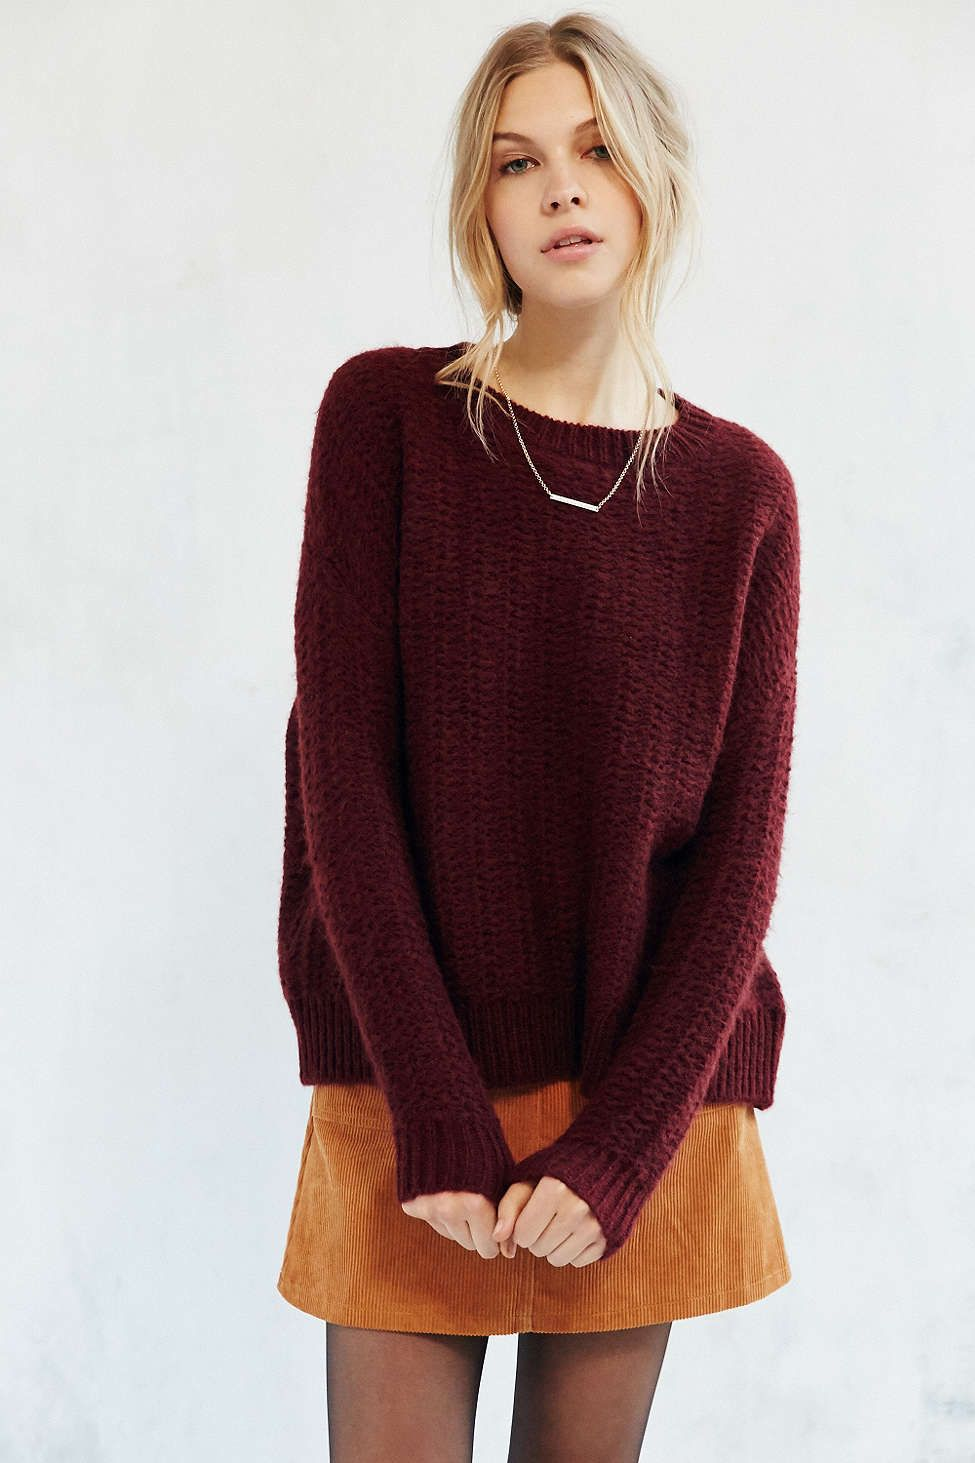 f3841a25d8 Love the baggier sweater look